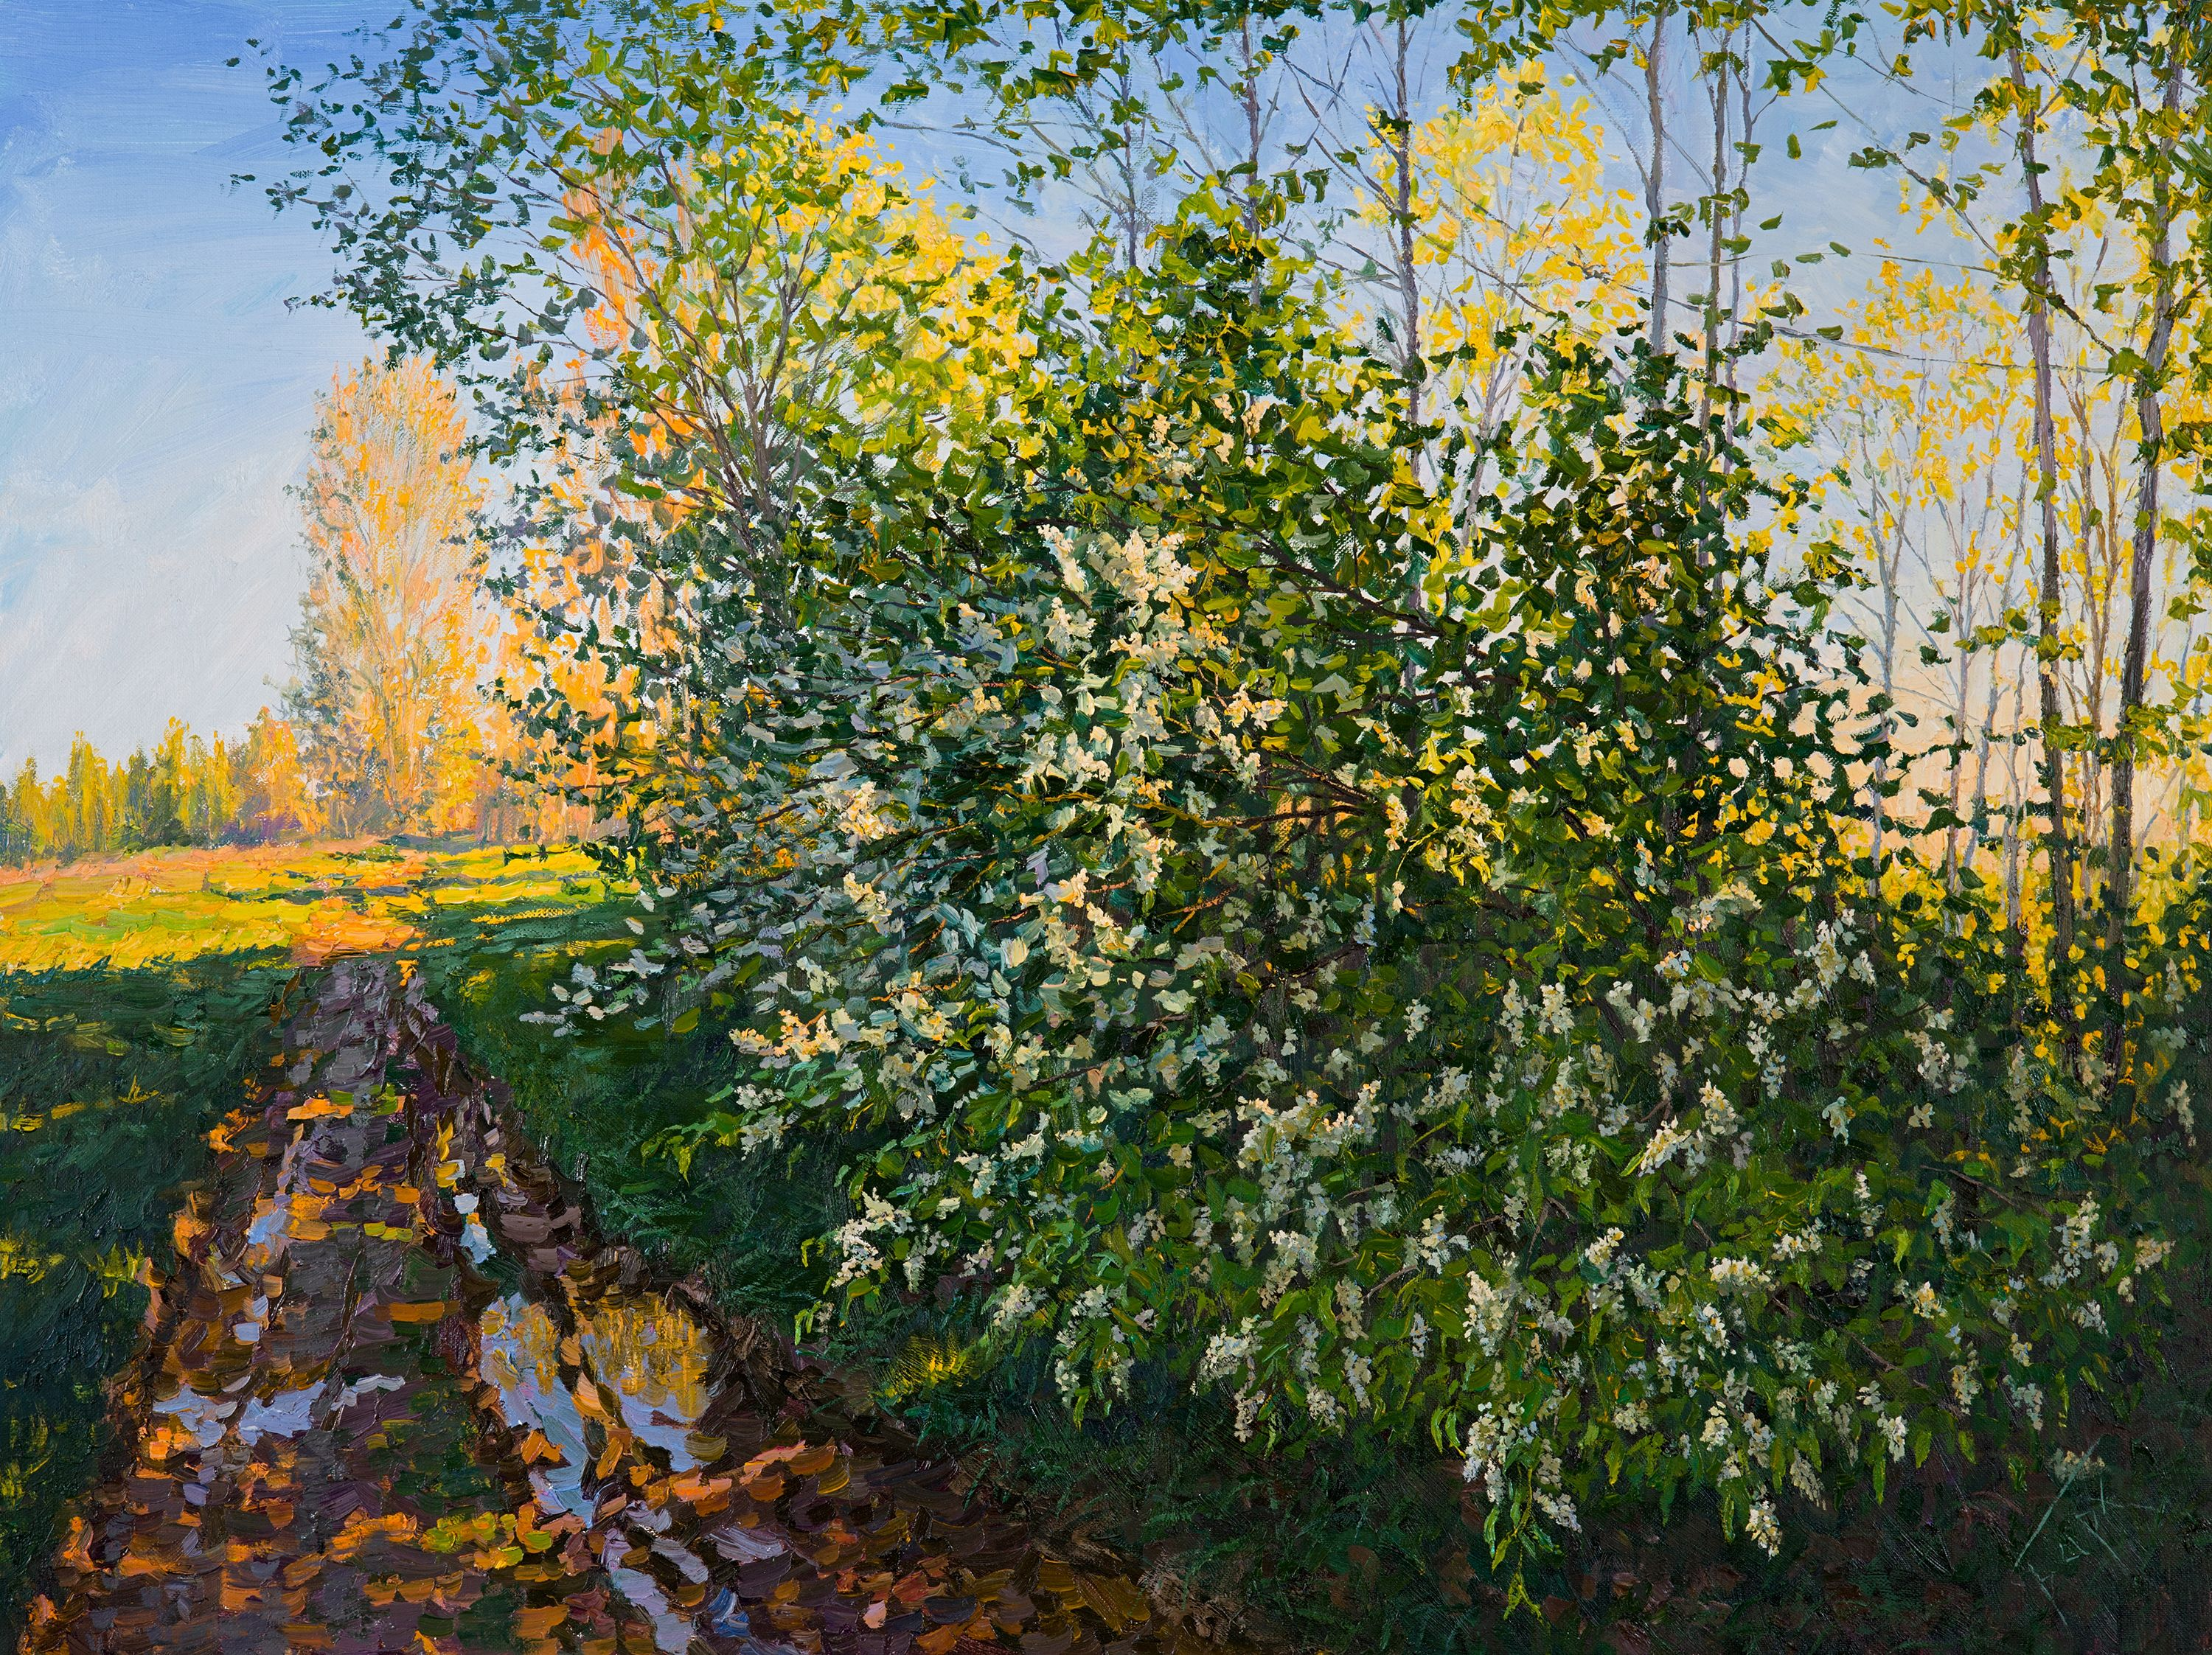 Bird cherry tree by the road, Painting, Oil on Canvas